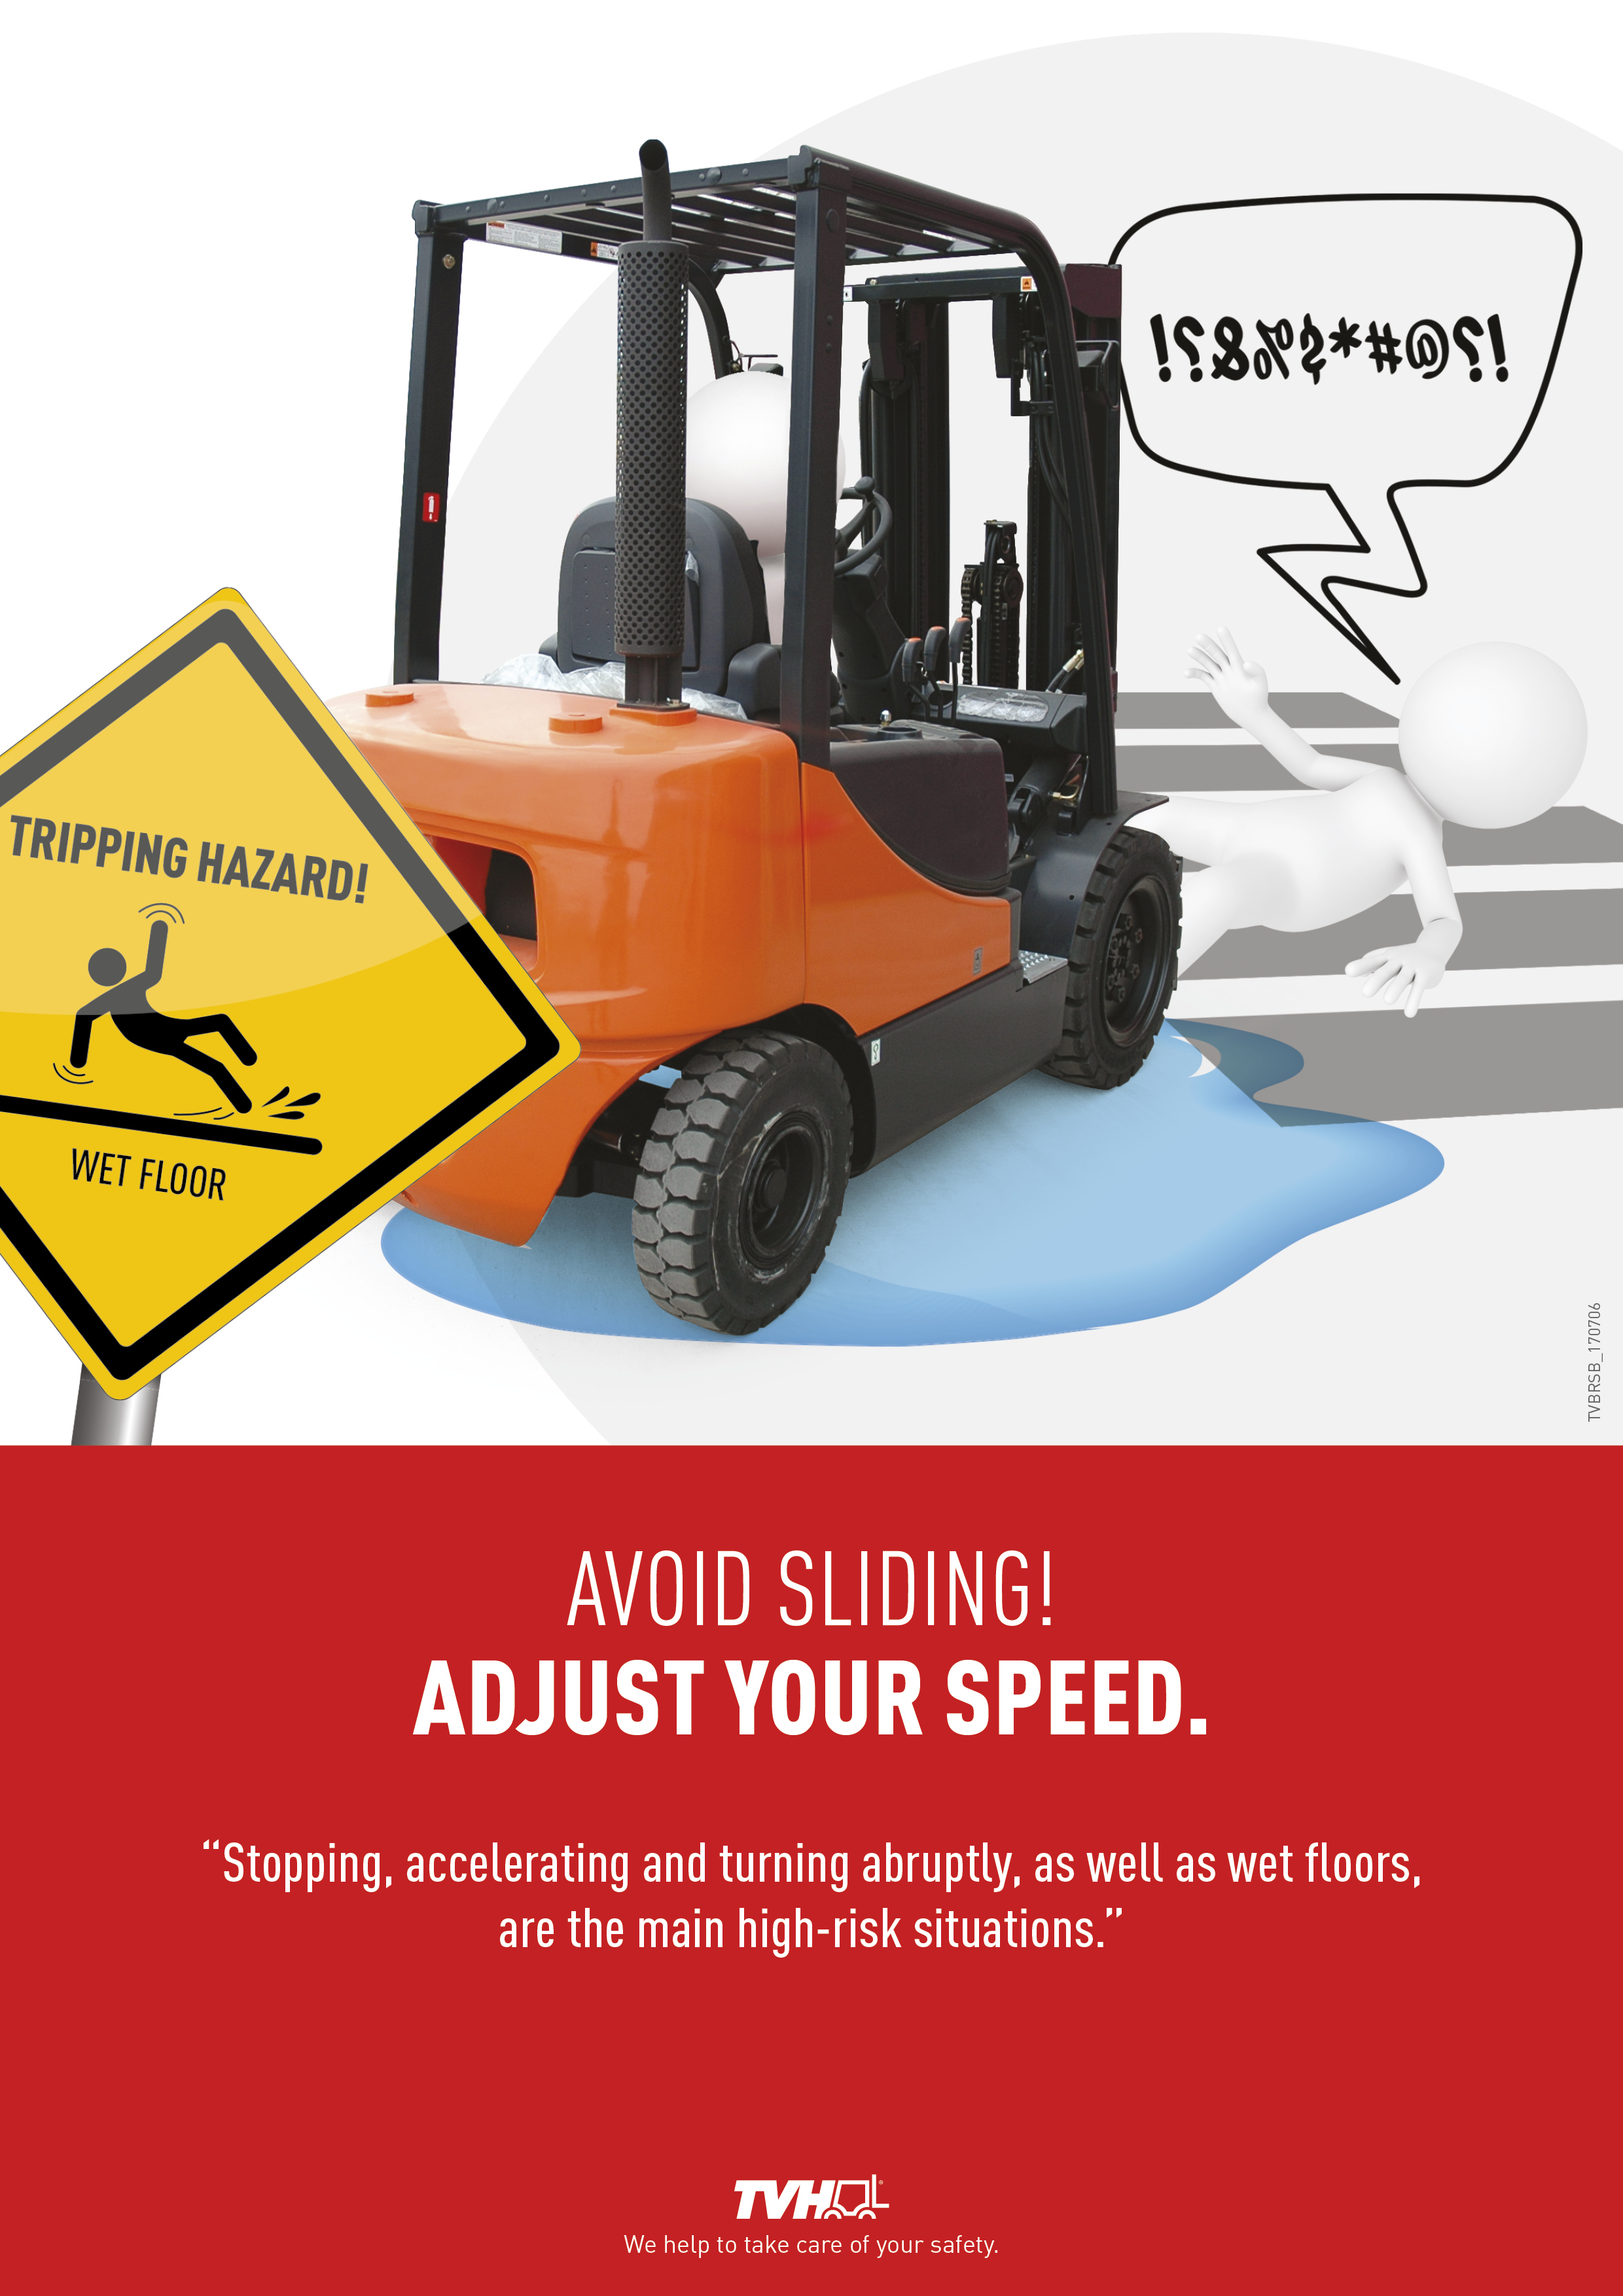 Lie On Adjusting The Speed Of The Lift Truck And If Possible Avoiding Wet Spots What Do You Think Of Our Awareness Posters Feel Free To Use Them